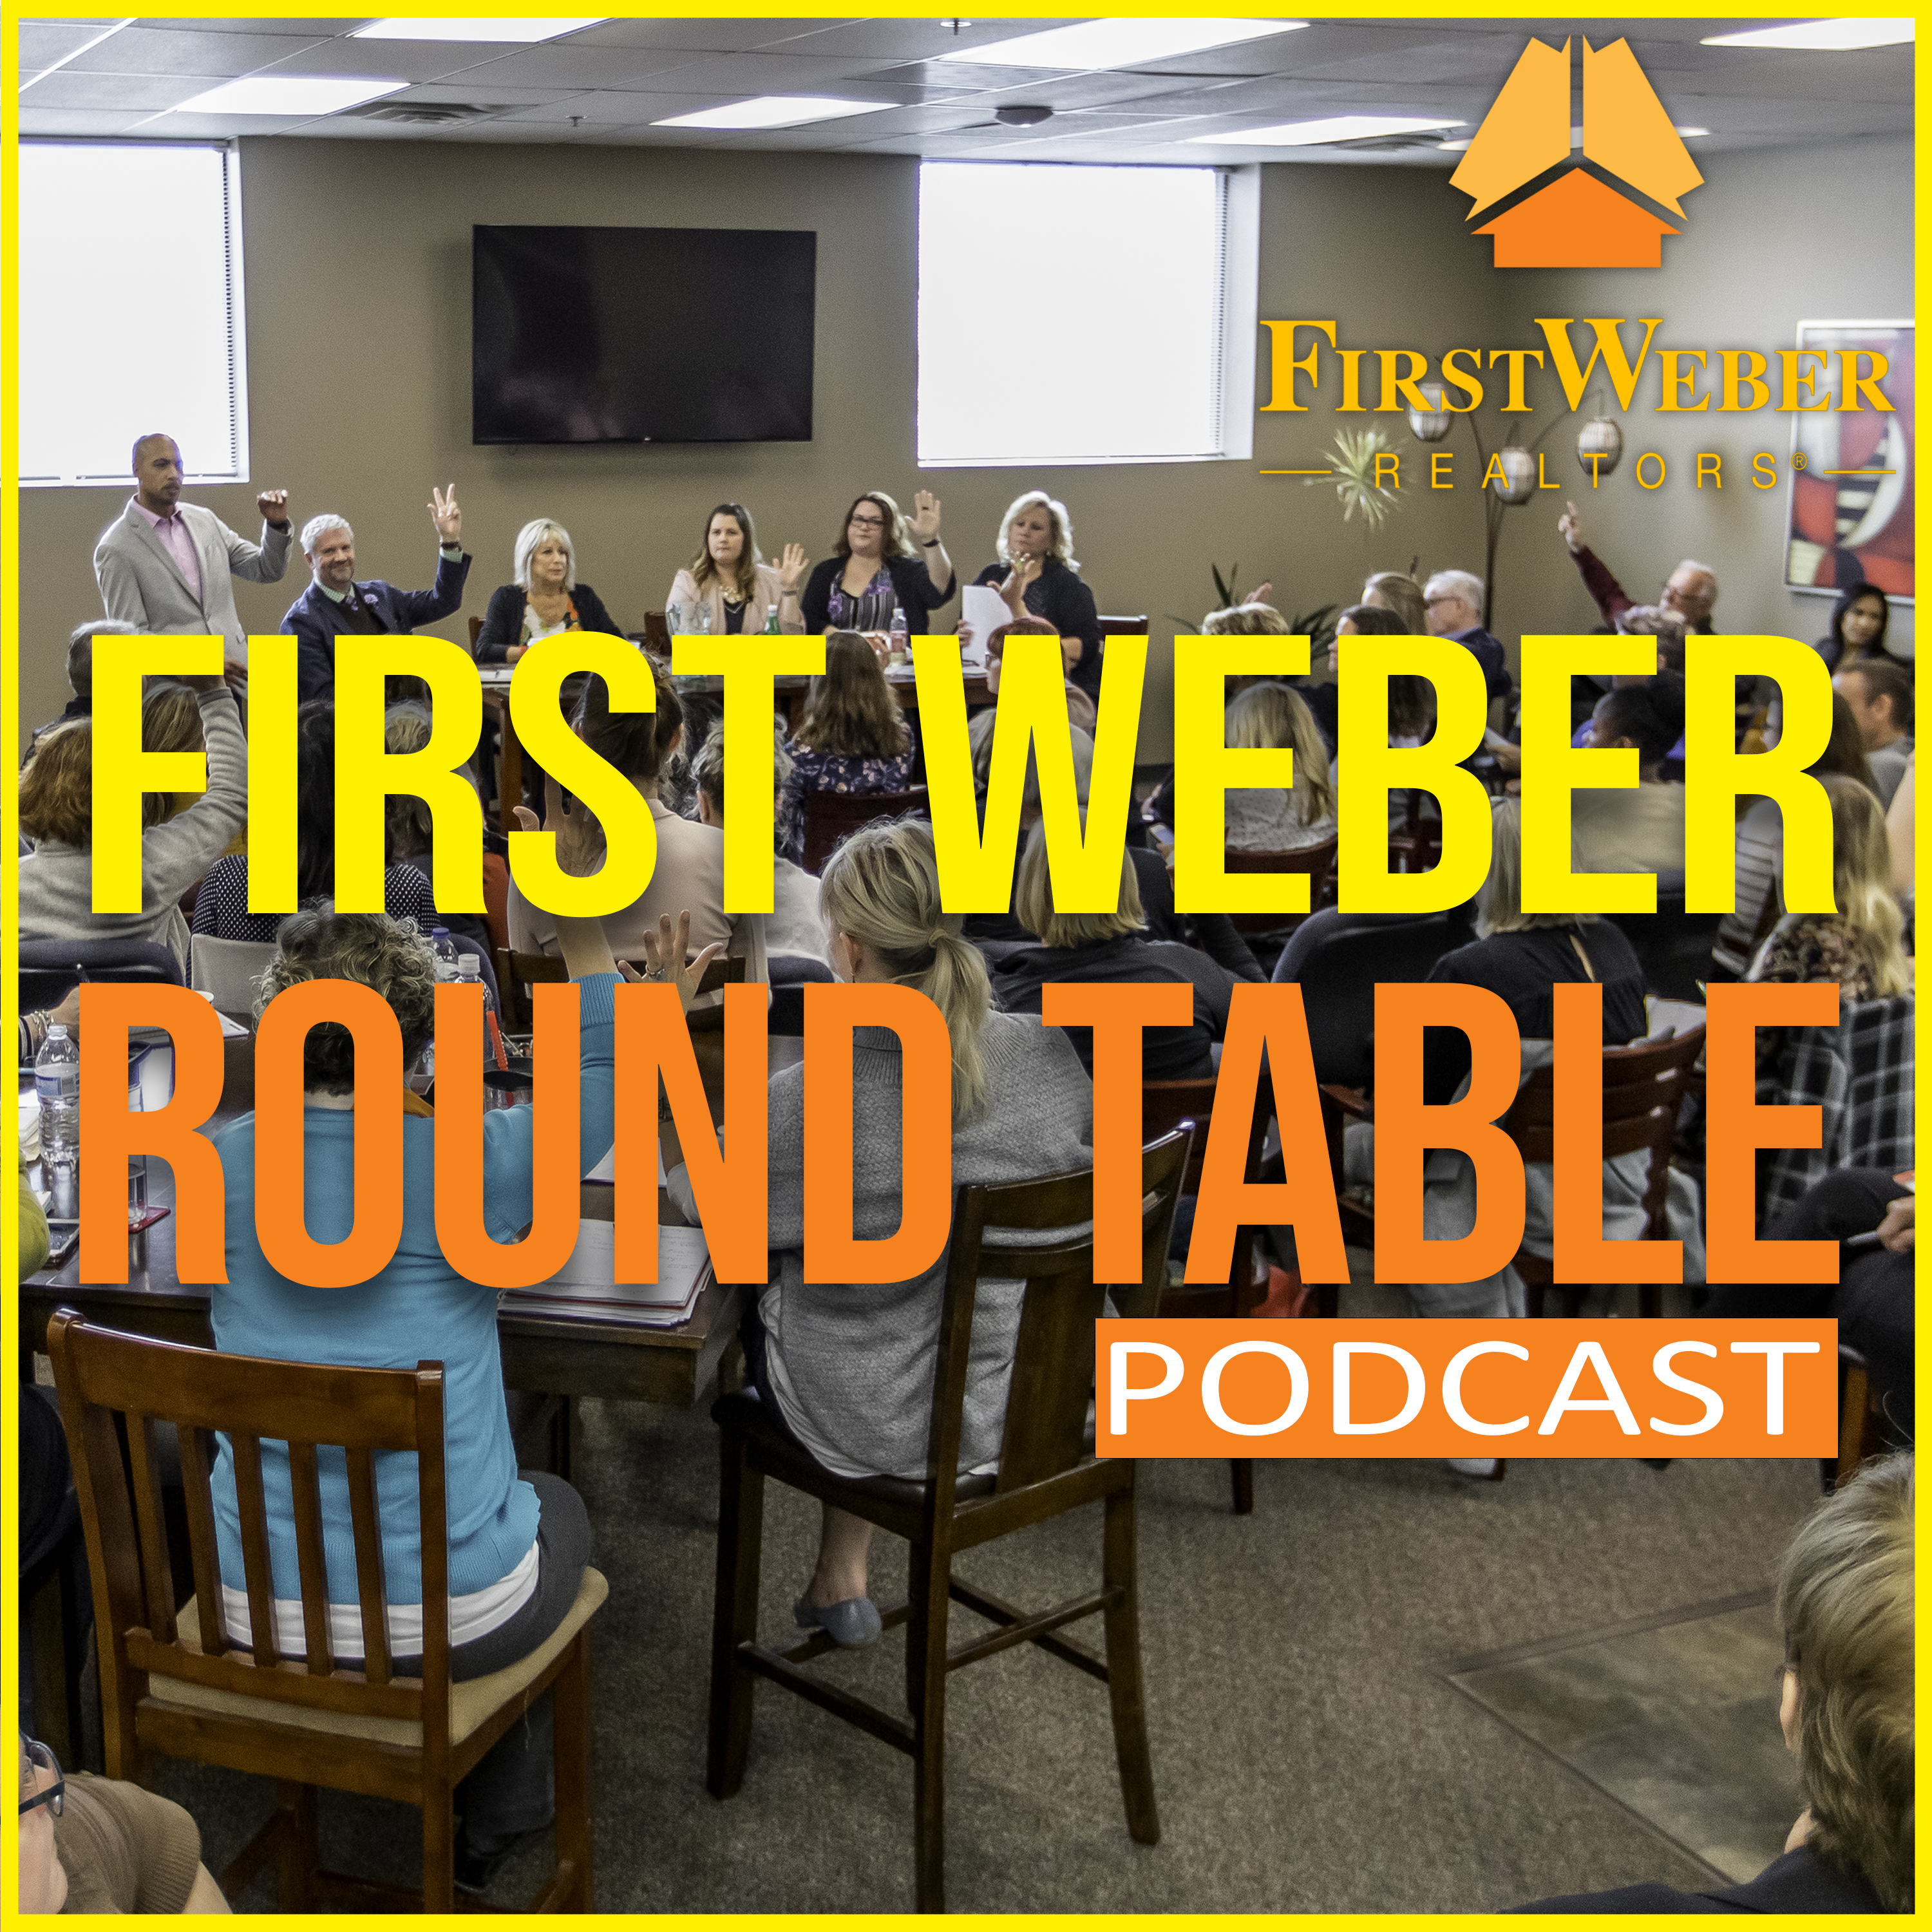 Round Table Podcast.Podcast First Weber Round Table Podcast Brookfield April 18